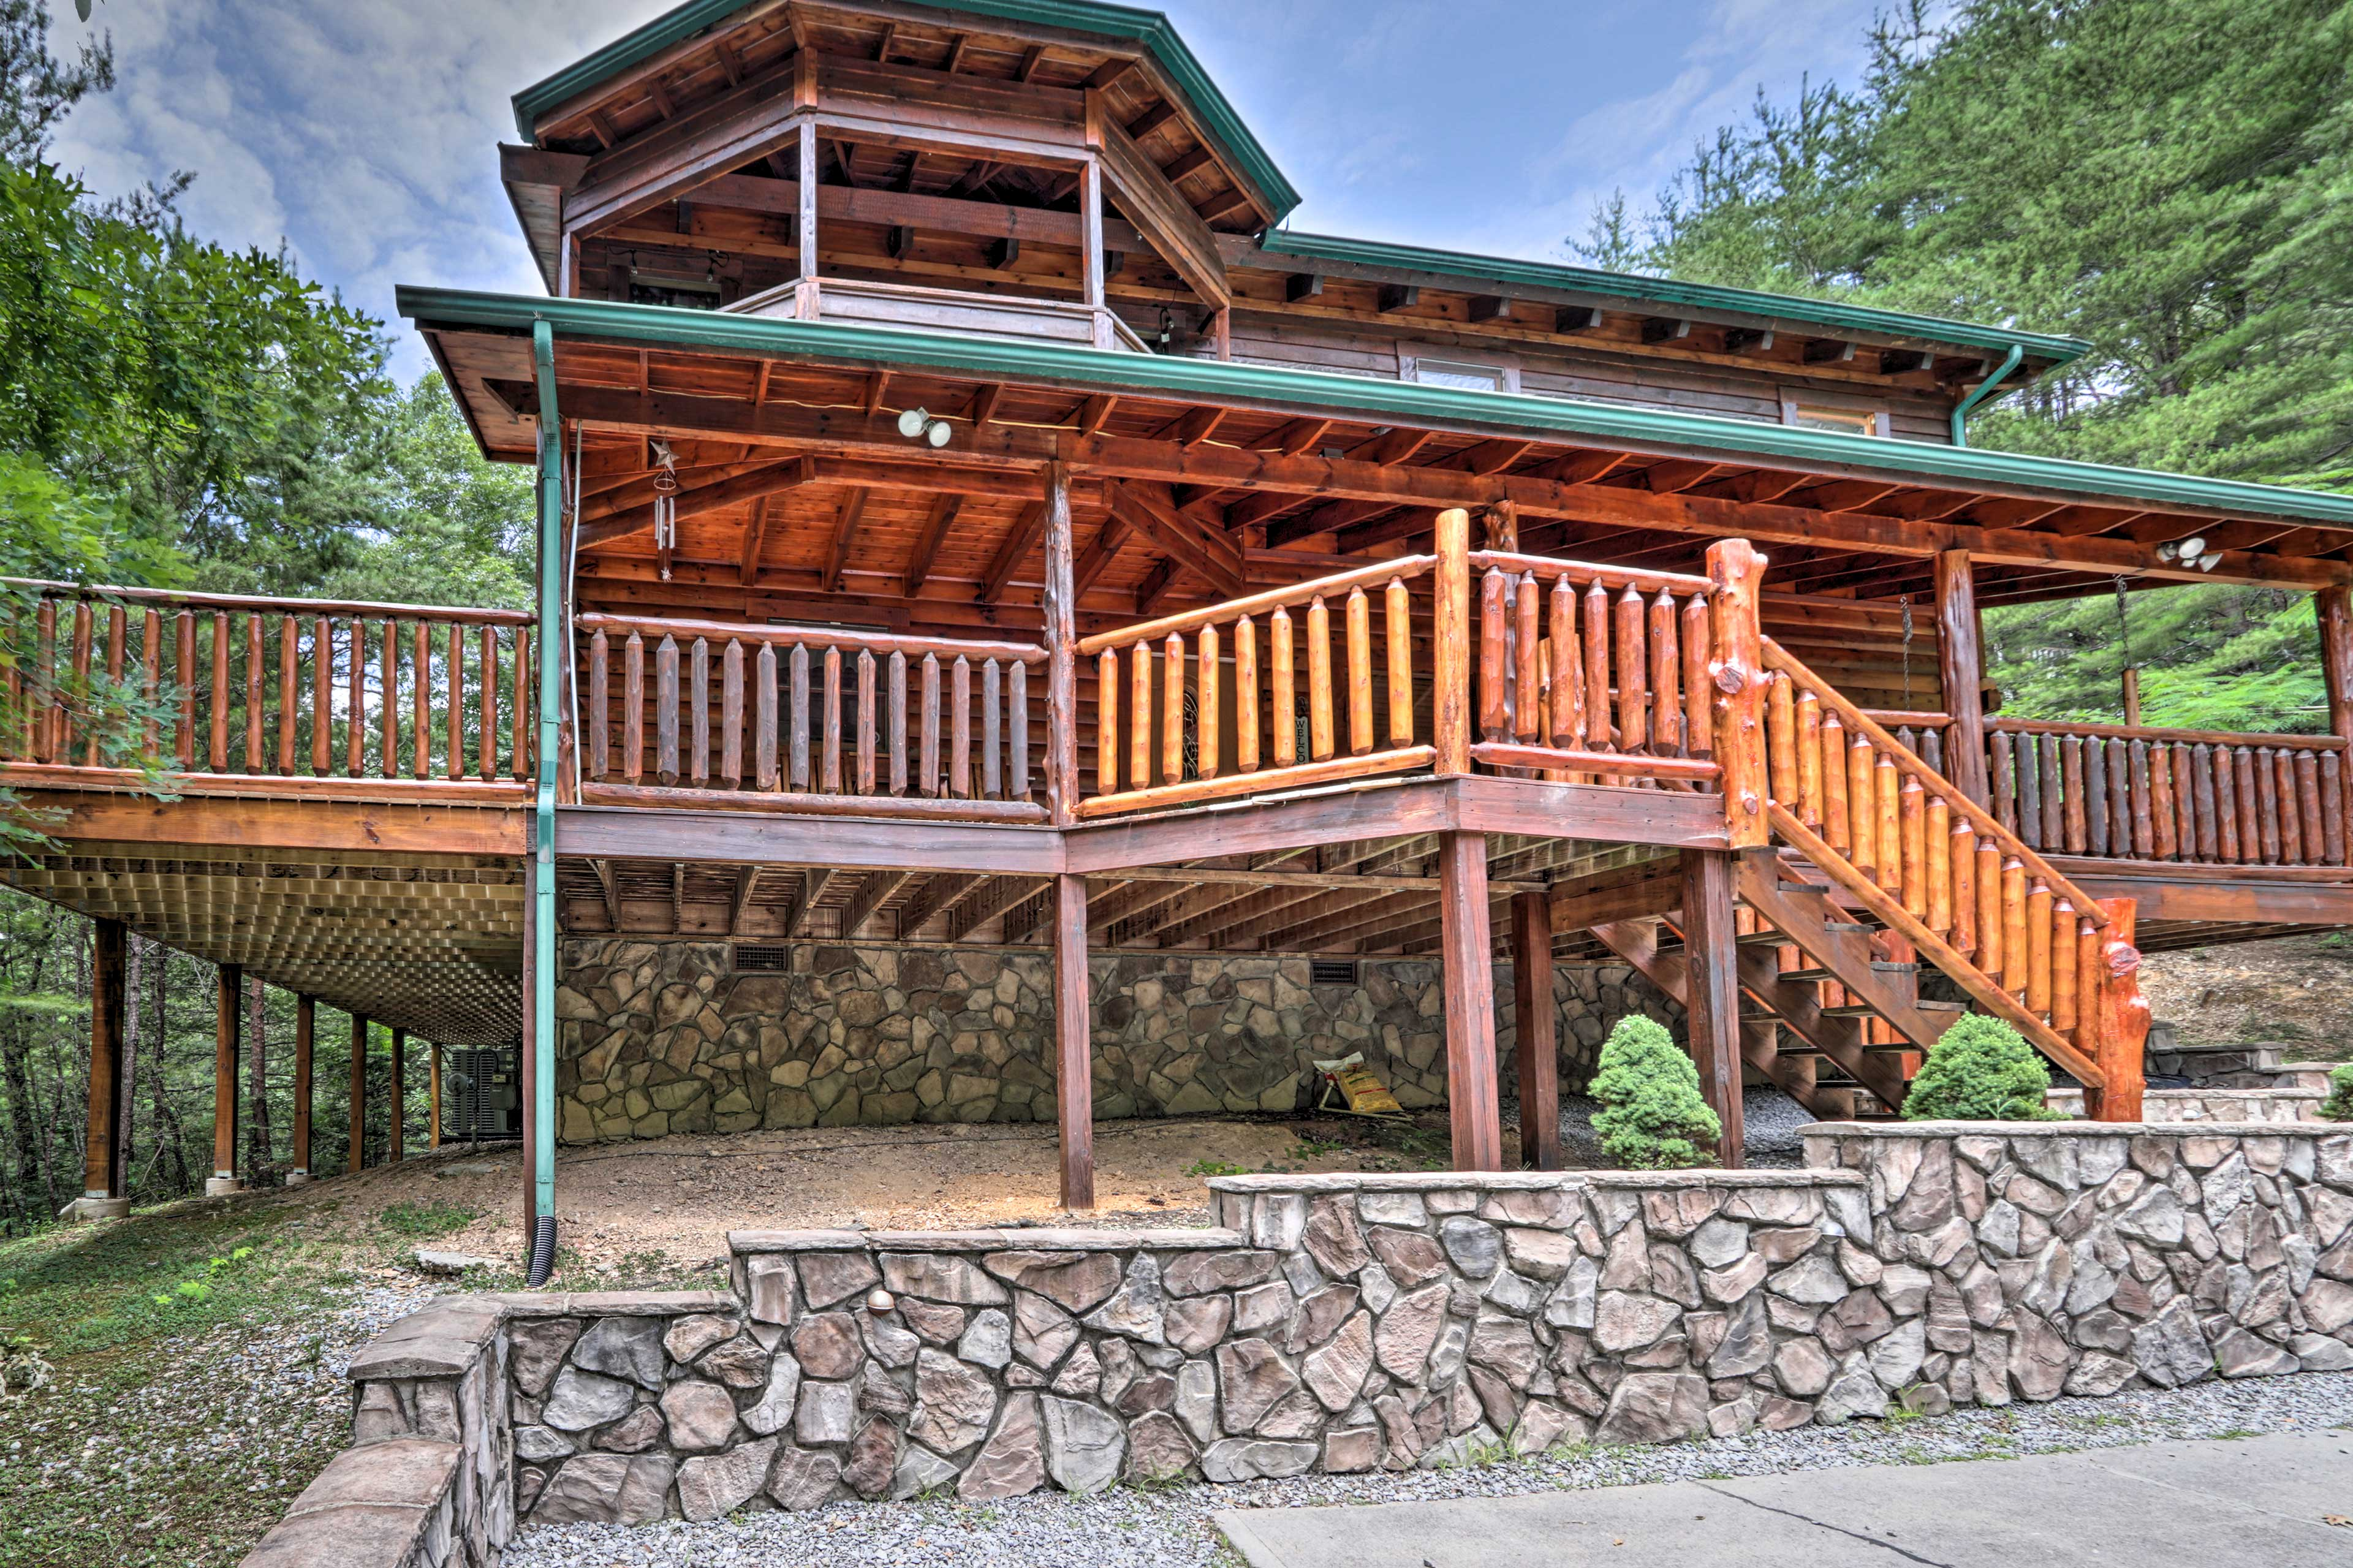 Your rustic Pigeon Forge home-away-from-home awaits.